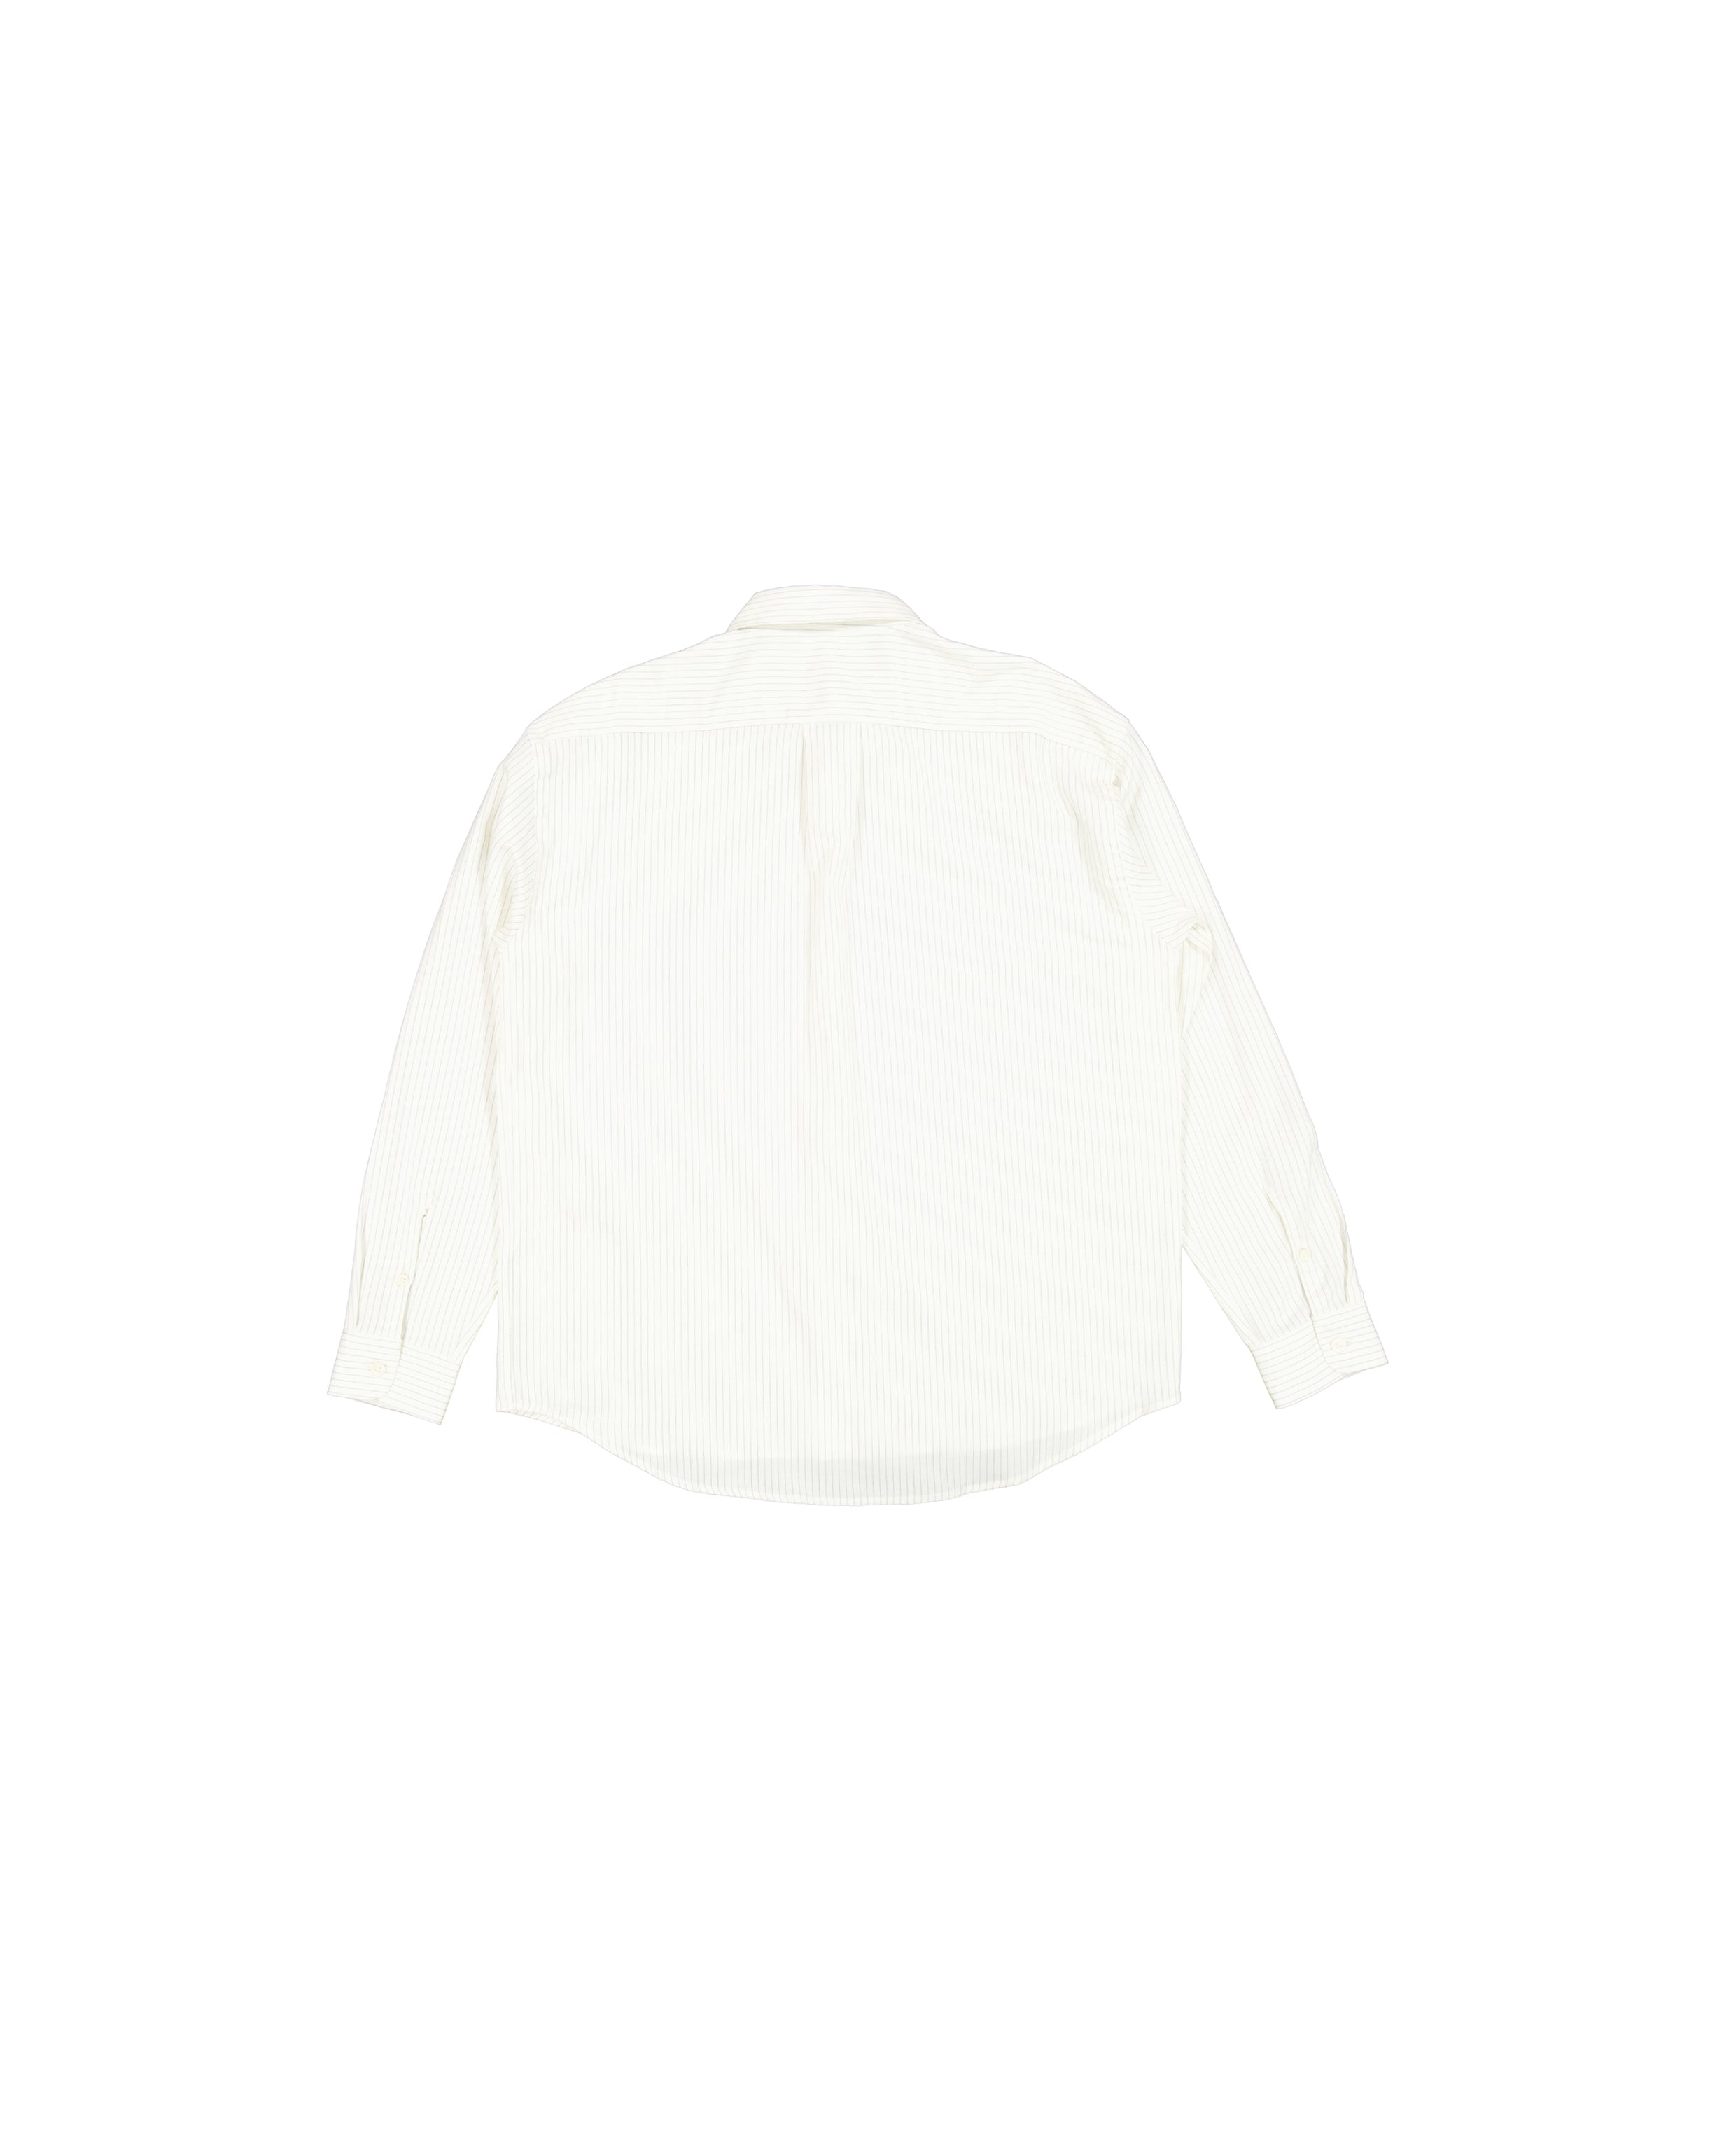 TAGLESS SHIRT - WHITE